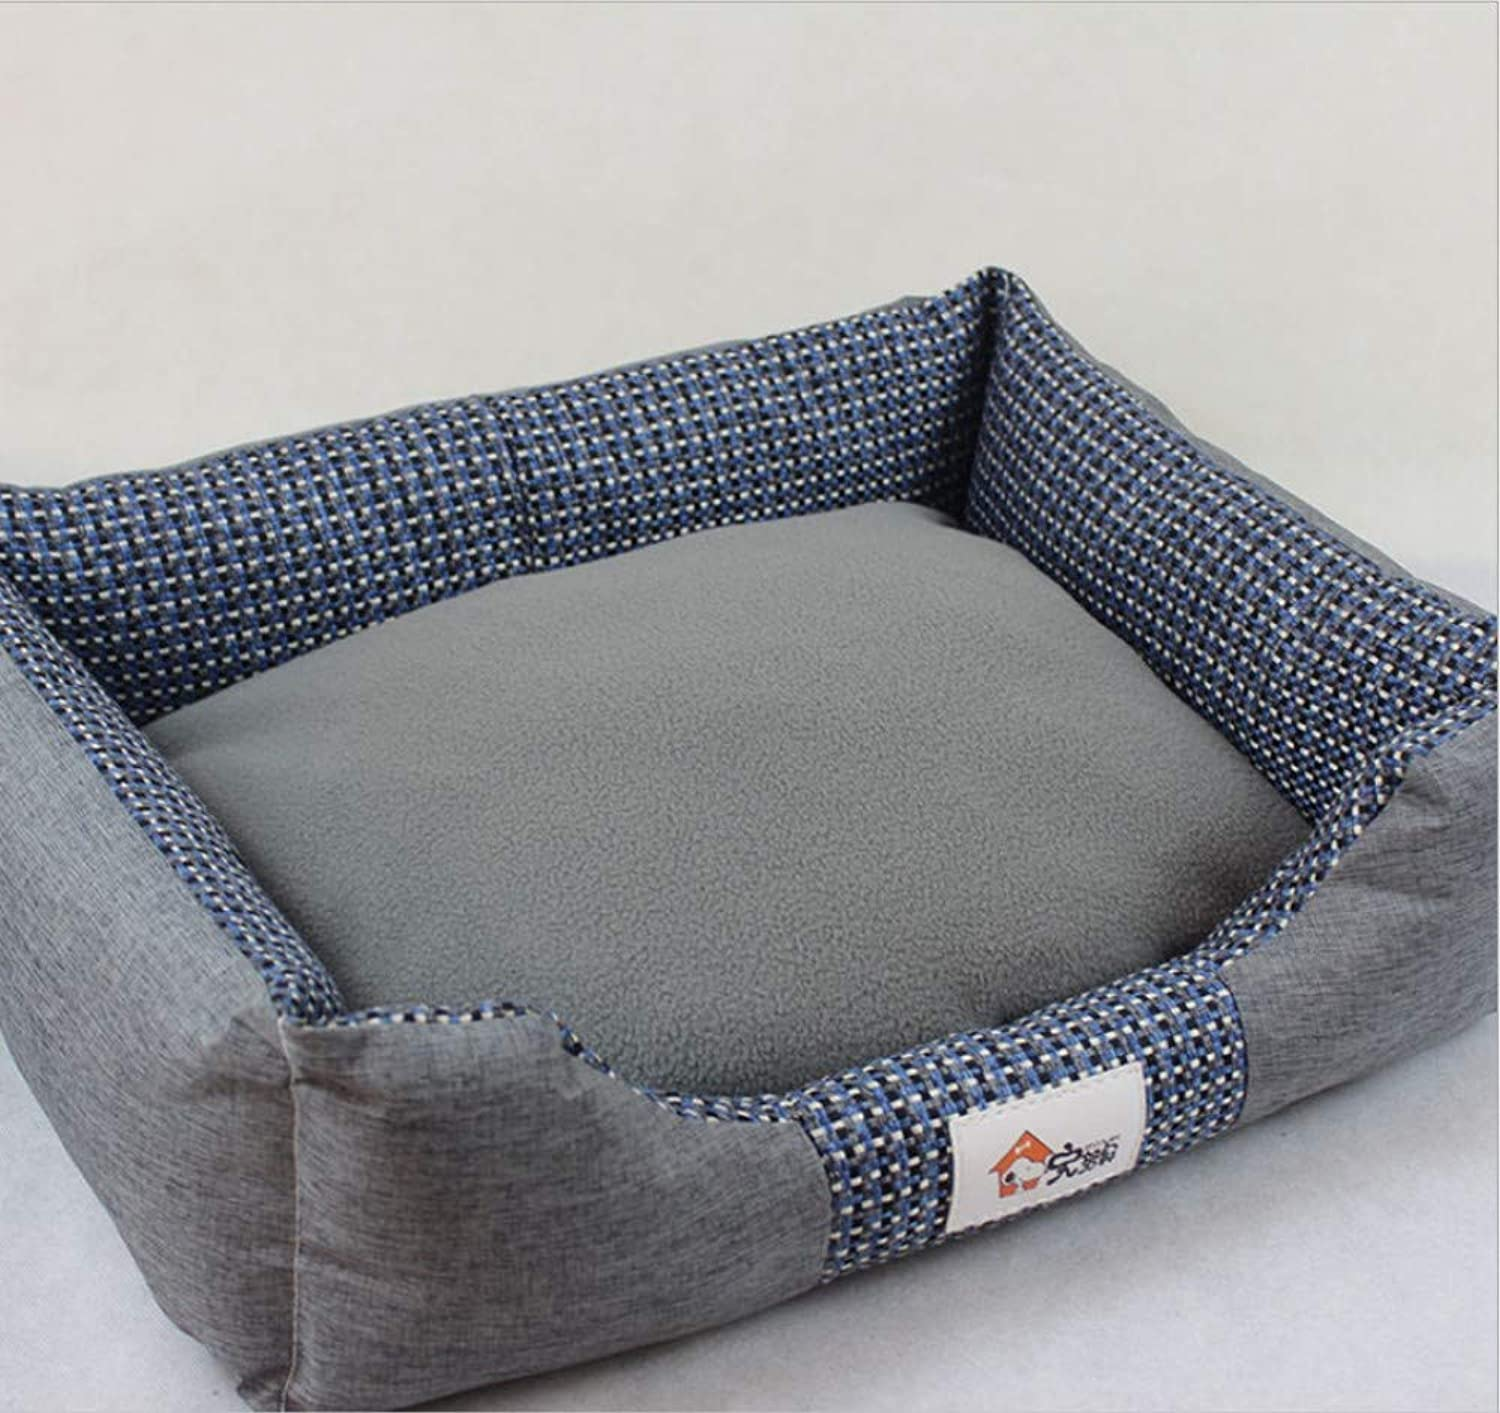 Canvas Kennel Pet Wo Teddy golden Retriever Large Dog Mat Creative Square Detachable Dog Bed